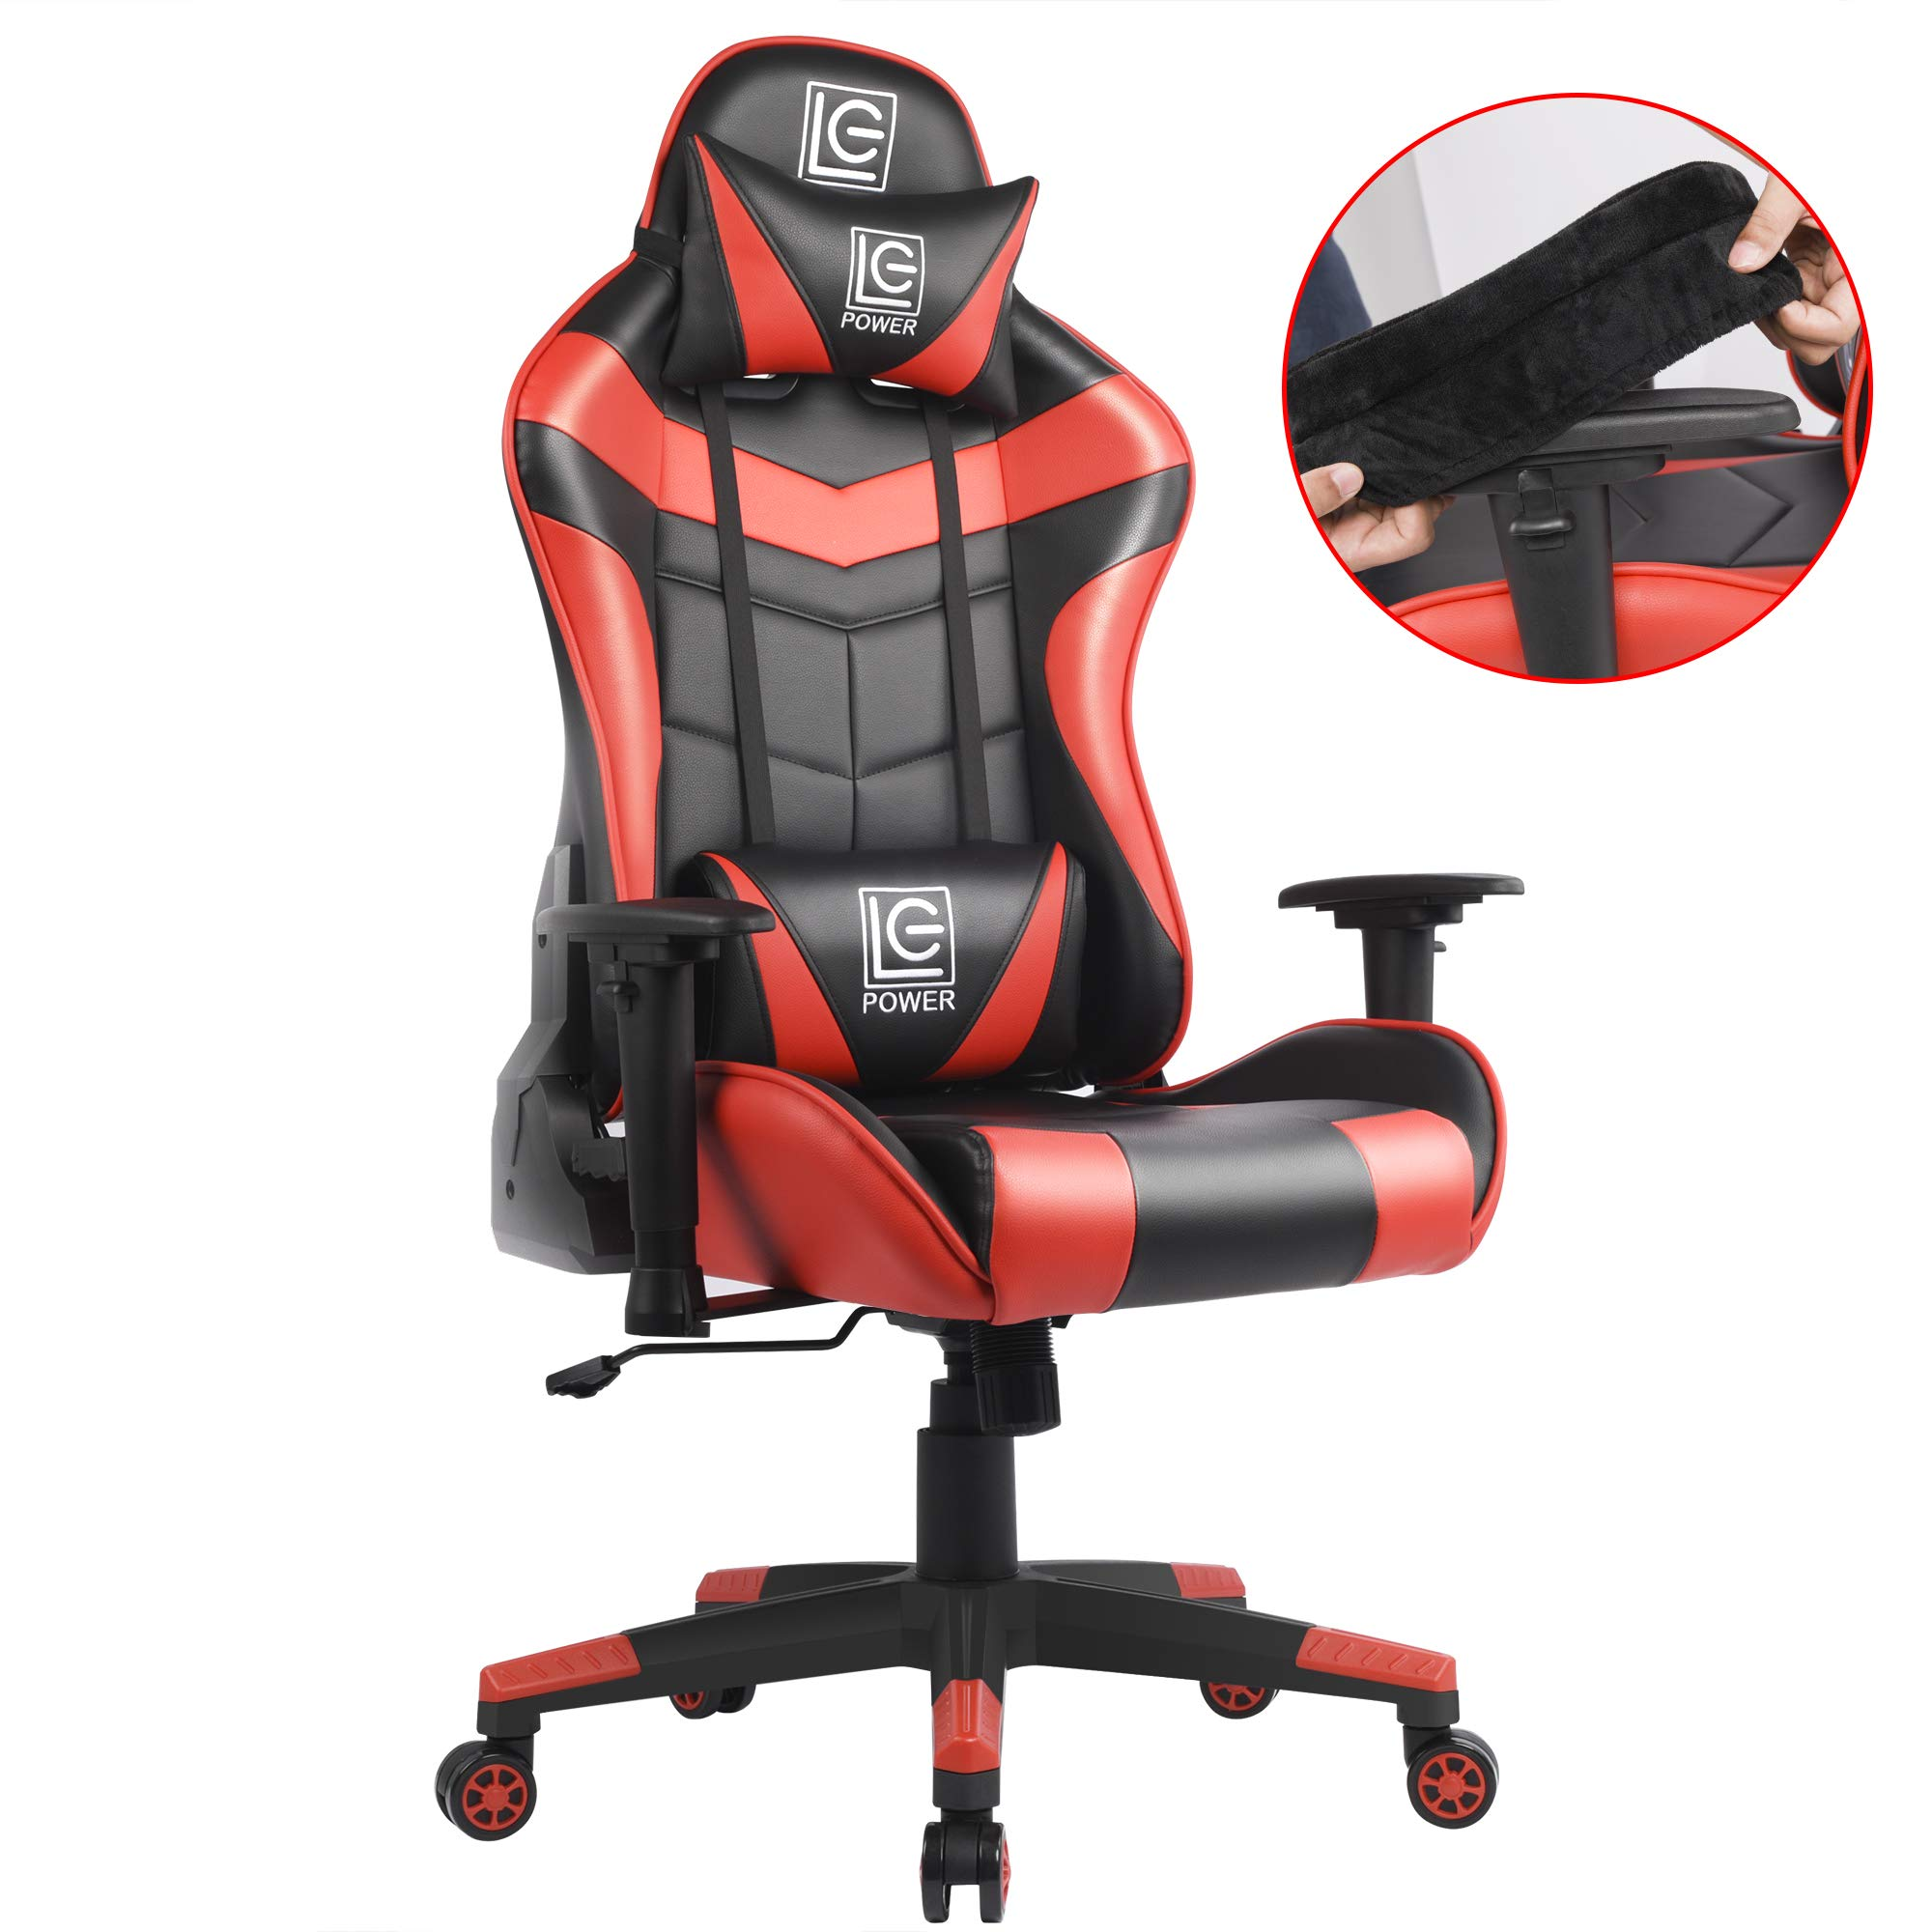 LC-Power Gaming Chair with Armrest Pads,Ergonomic Racing Style Computer Desk Chair Office Chair Lumbar Support with Backrest and Seat Height Adjustment for Women,Men(Red) by LC-Power